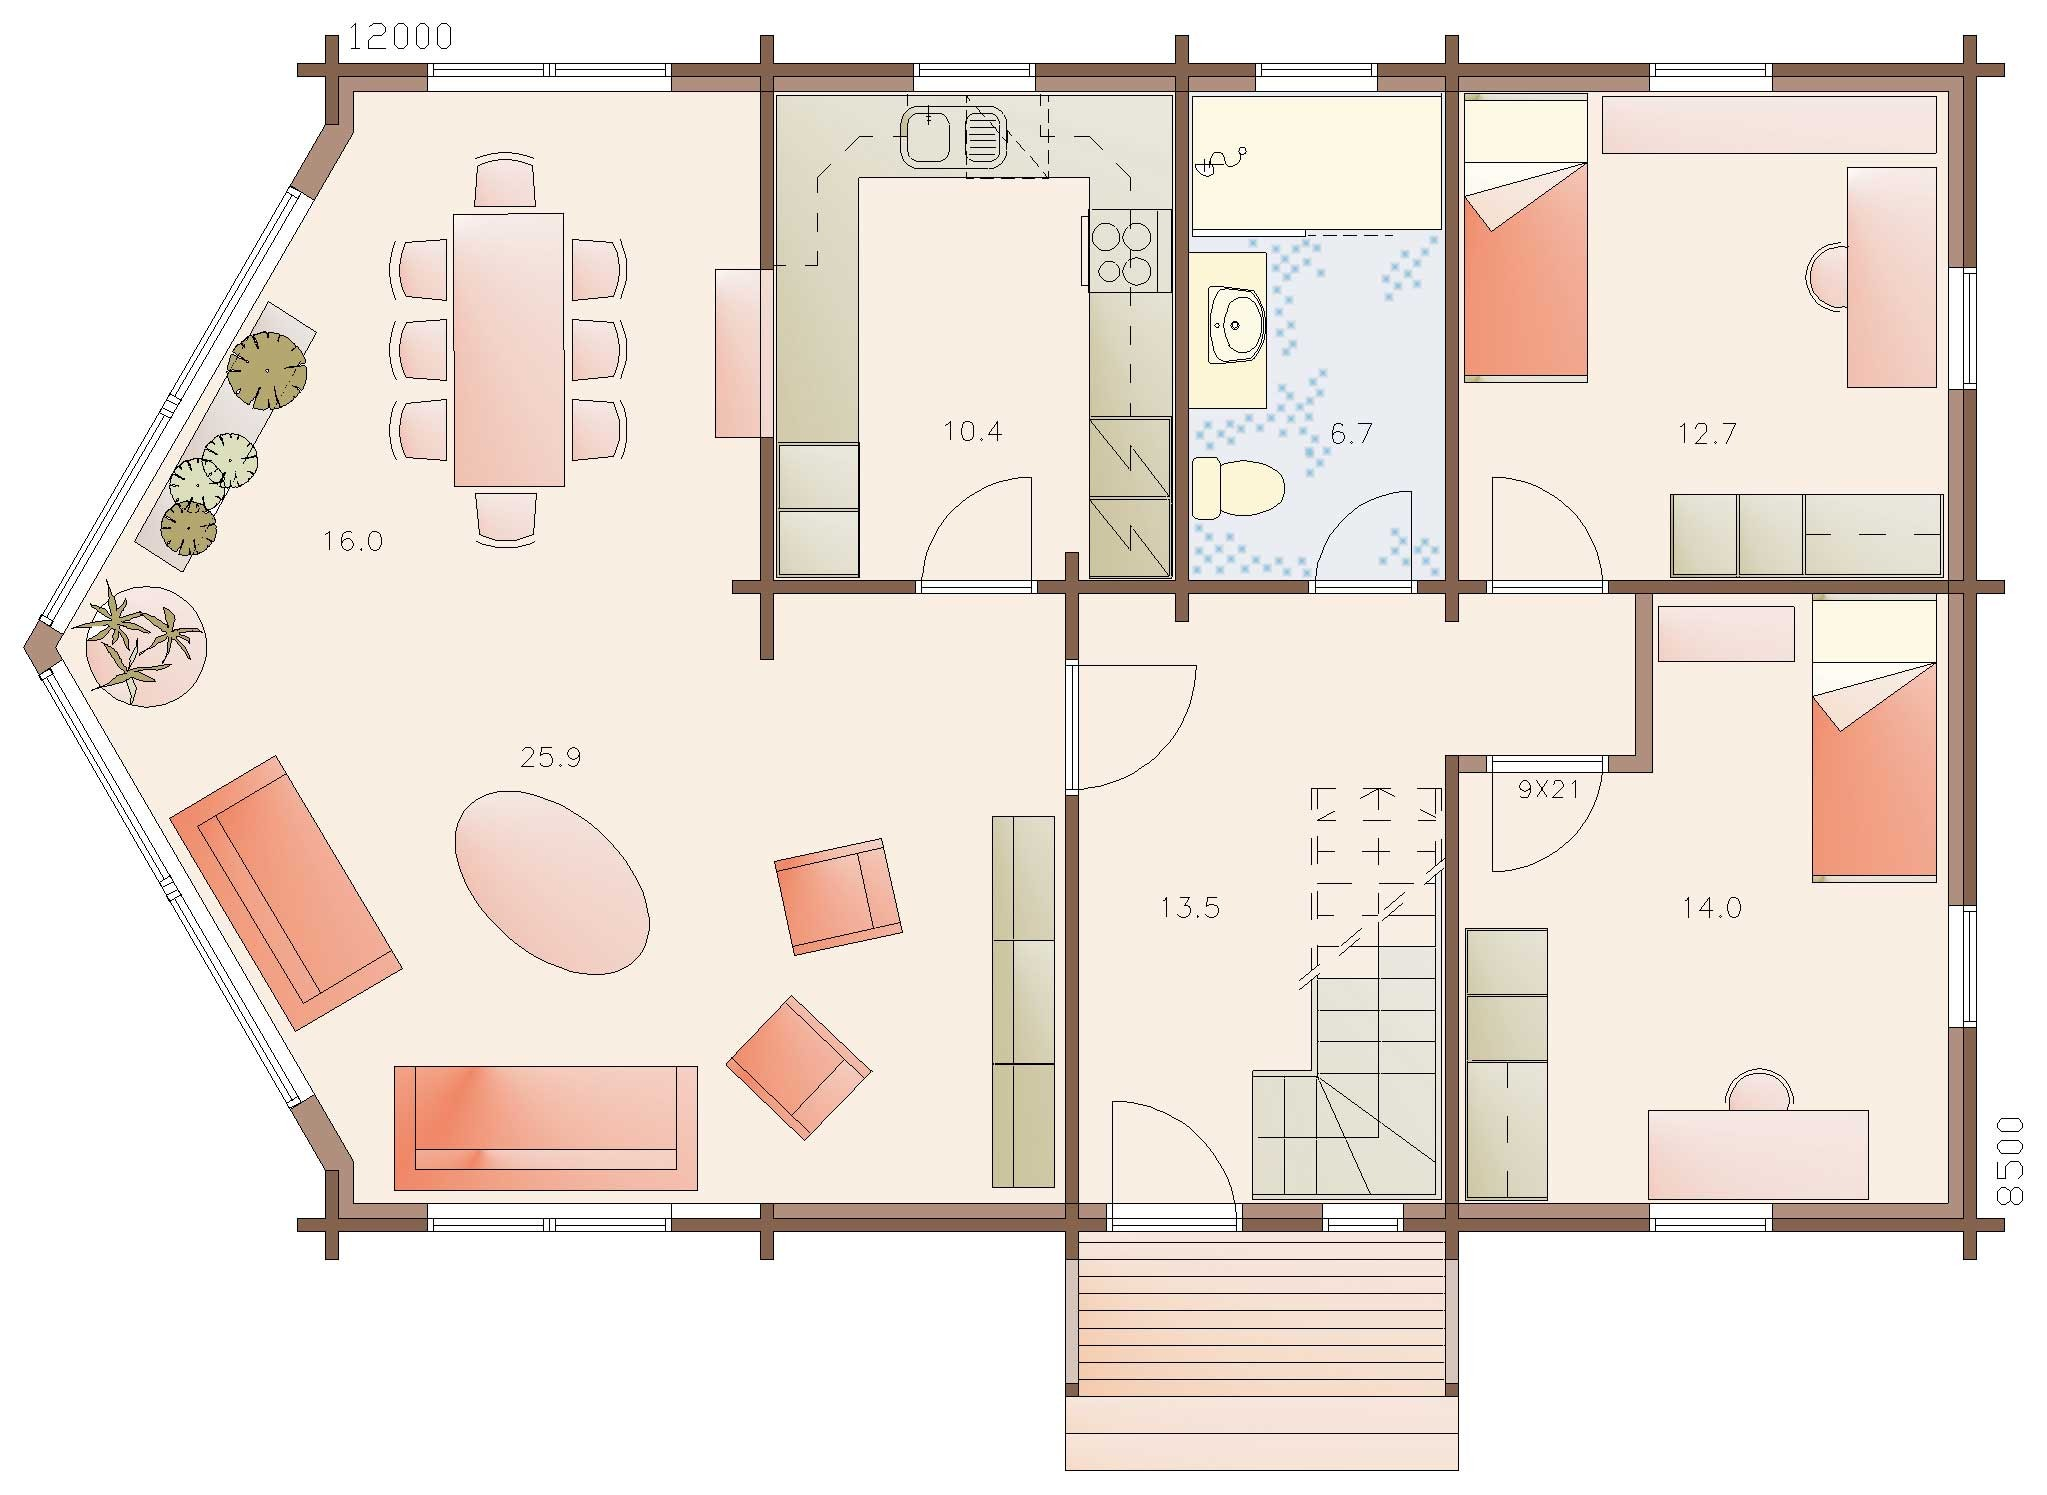 Mountain lodge homes continental 159 for Continental homes floor plans